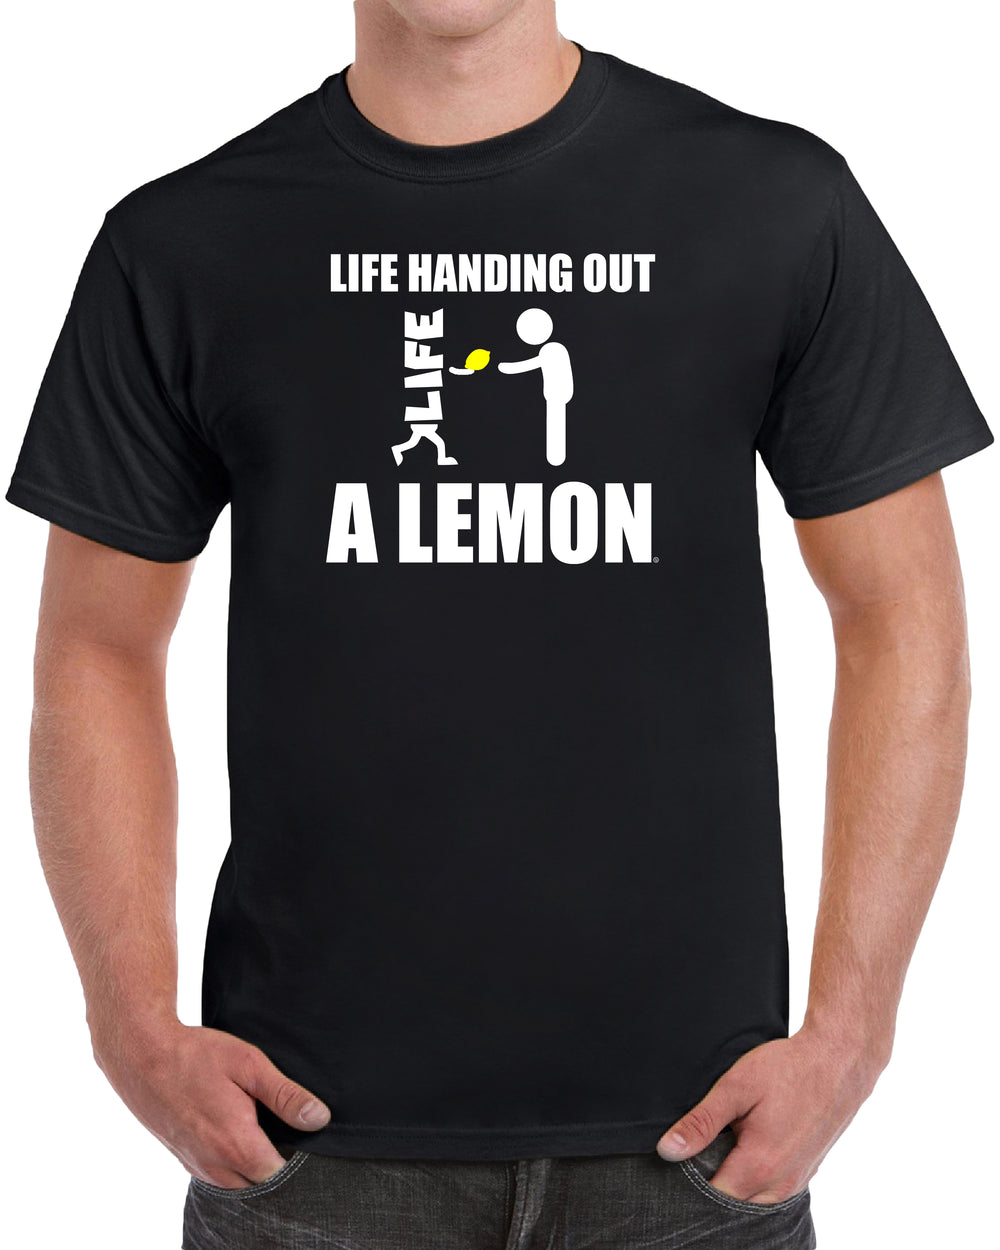 Life Handing Out A Lemon